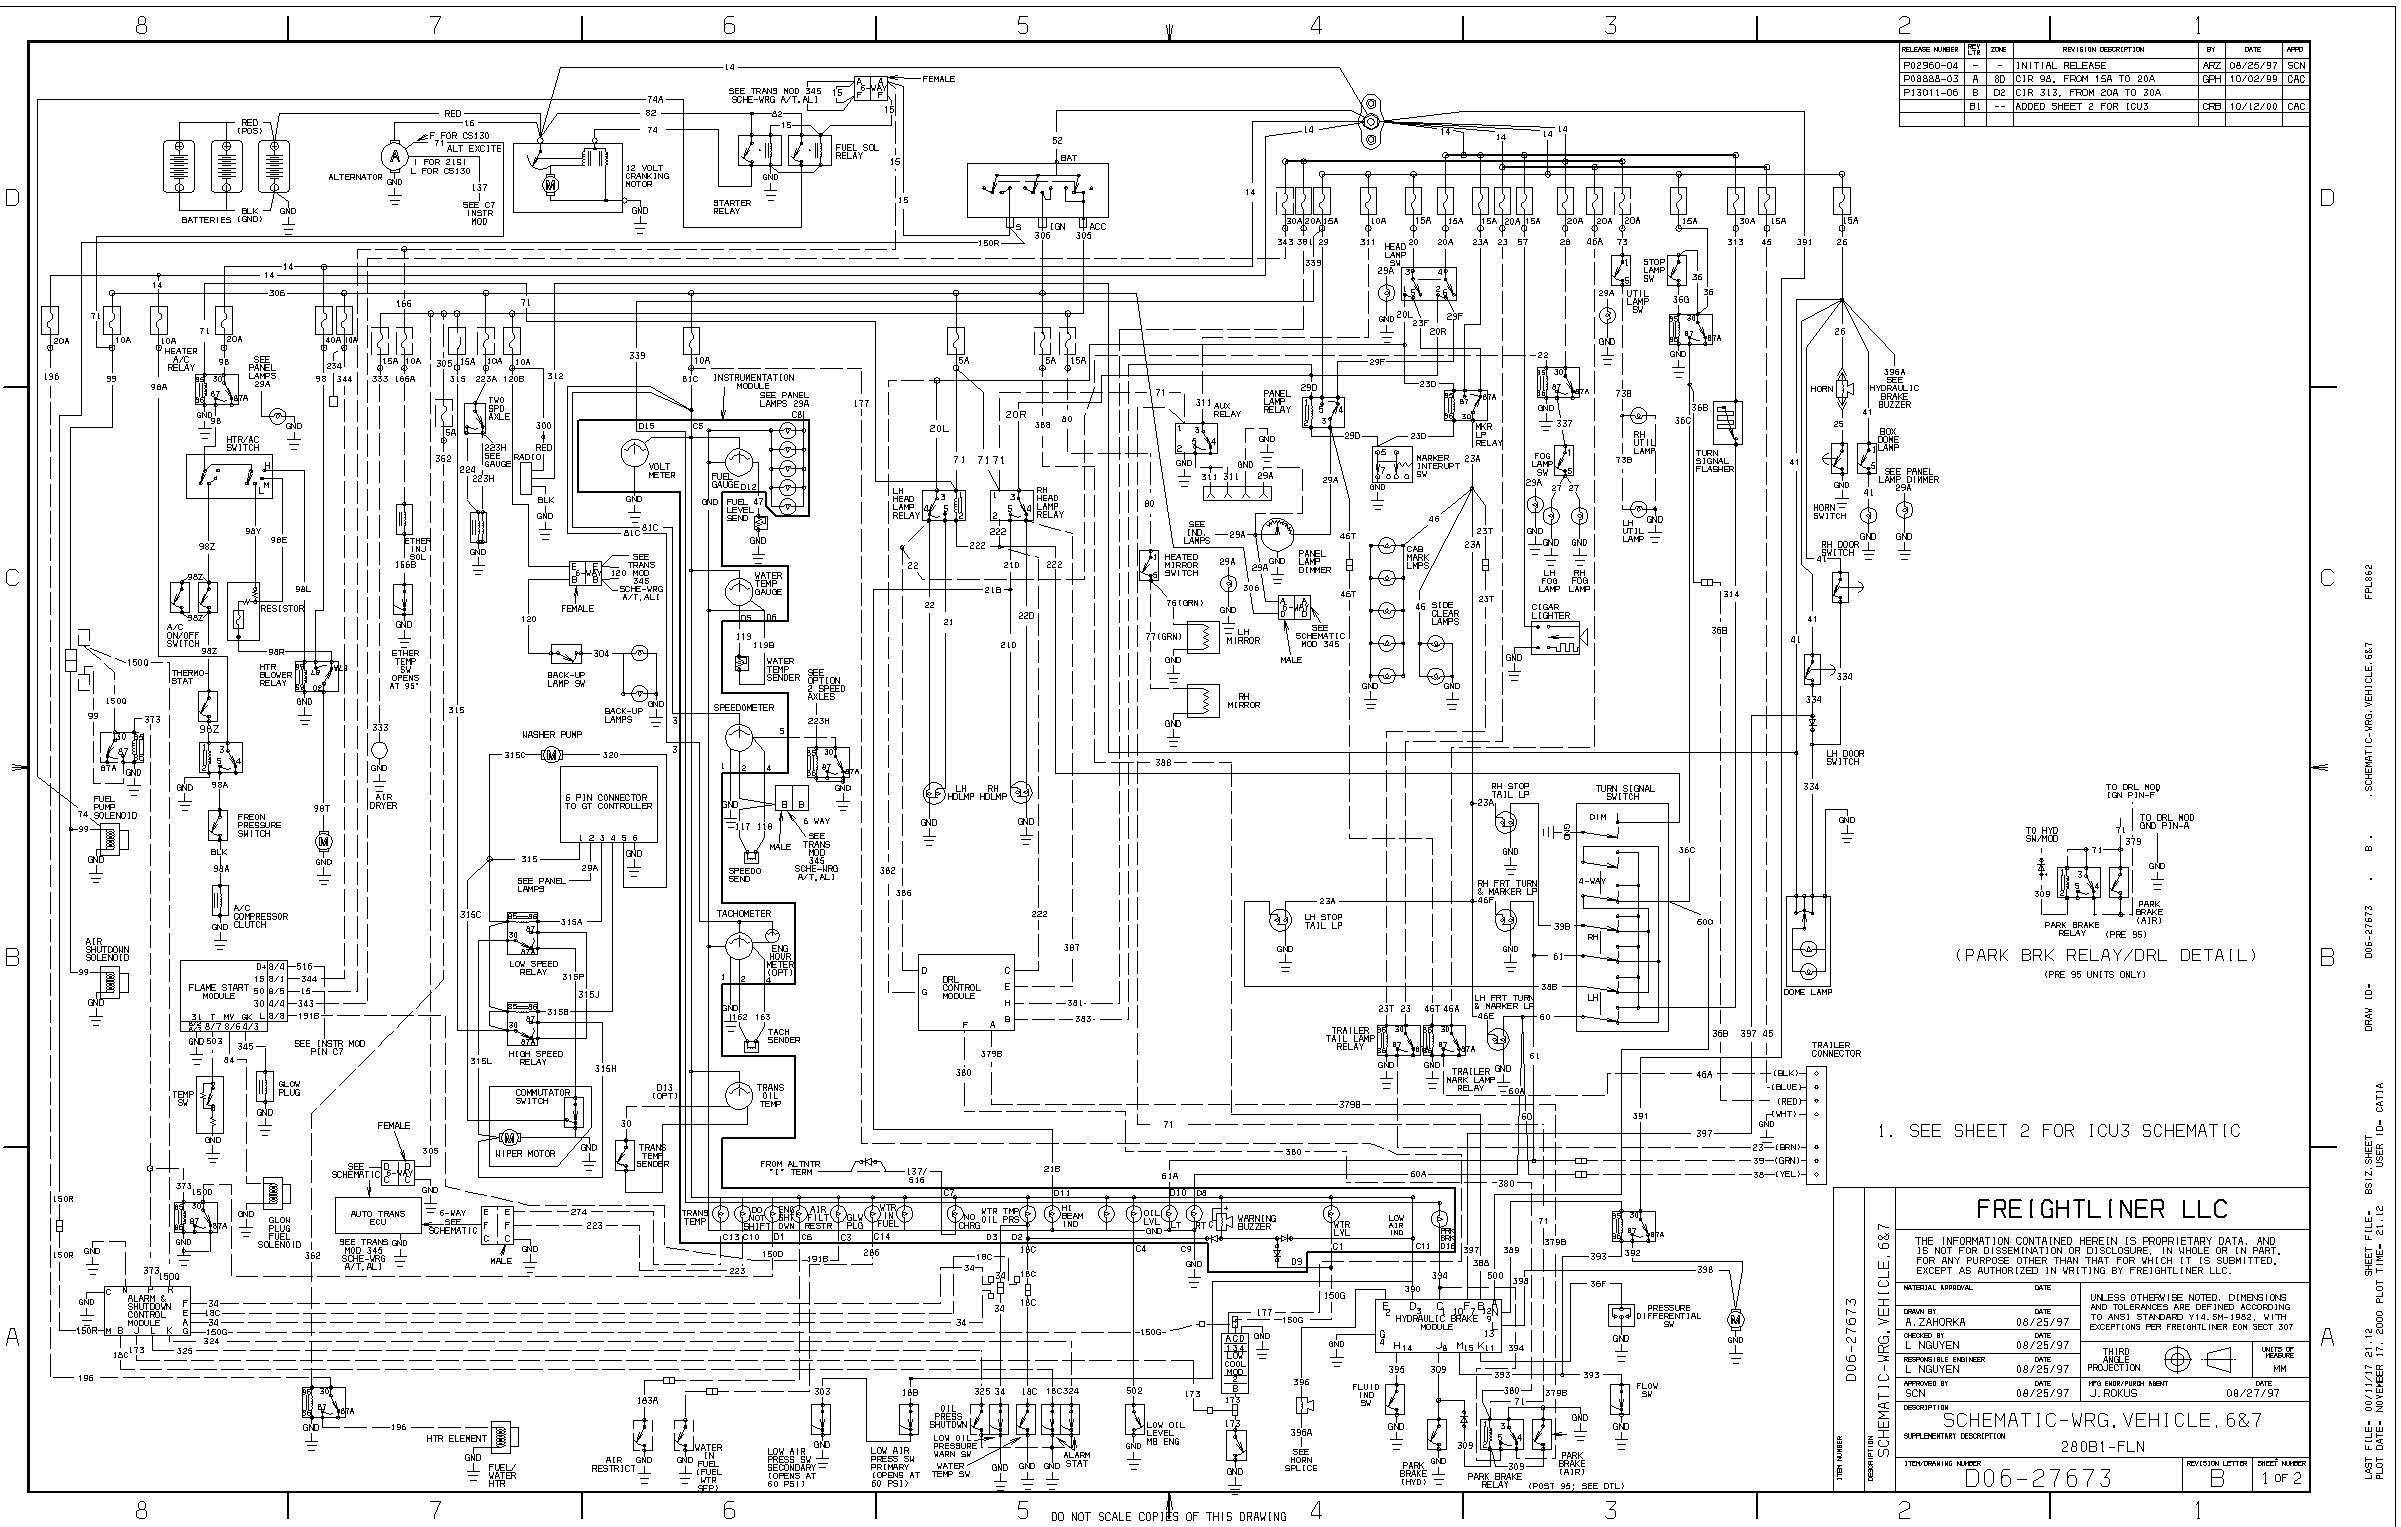 i have 2003 fl70 freightliner and i need a wiring diagram ... freightliner fuse box diagram